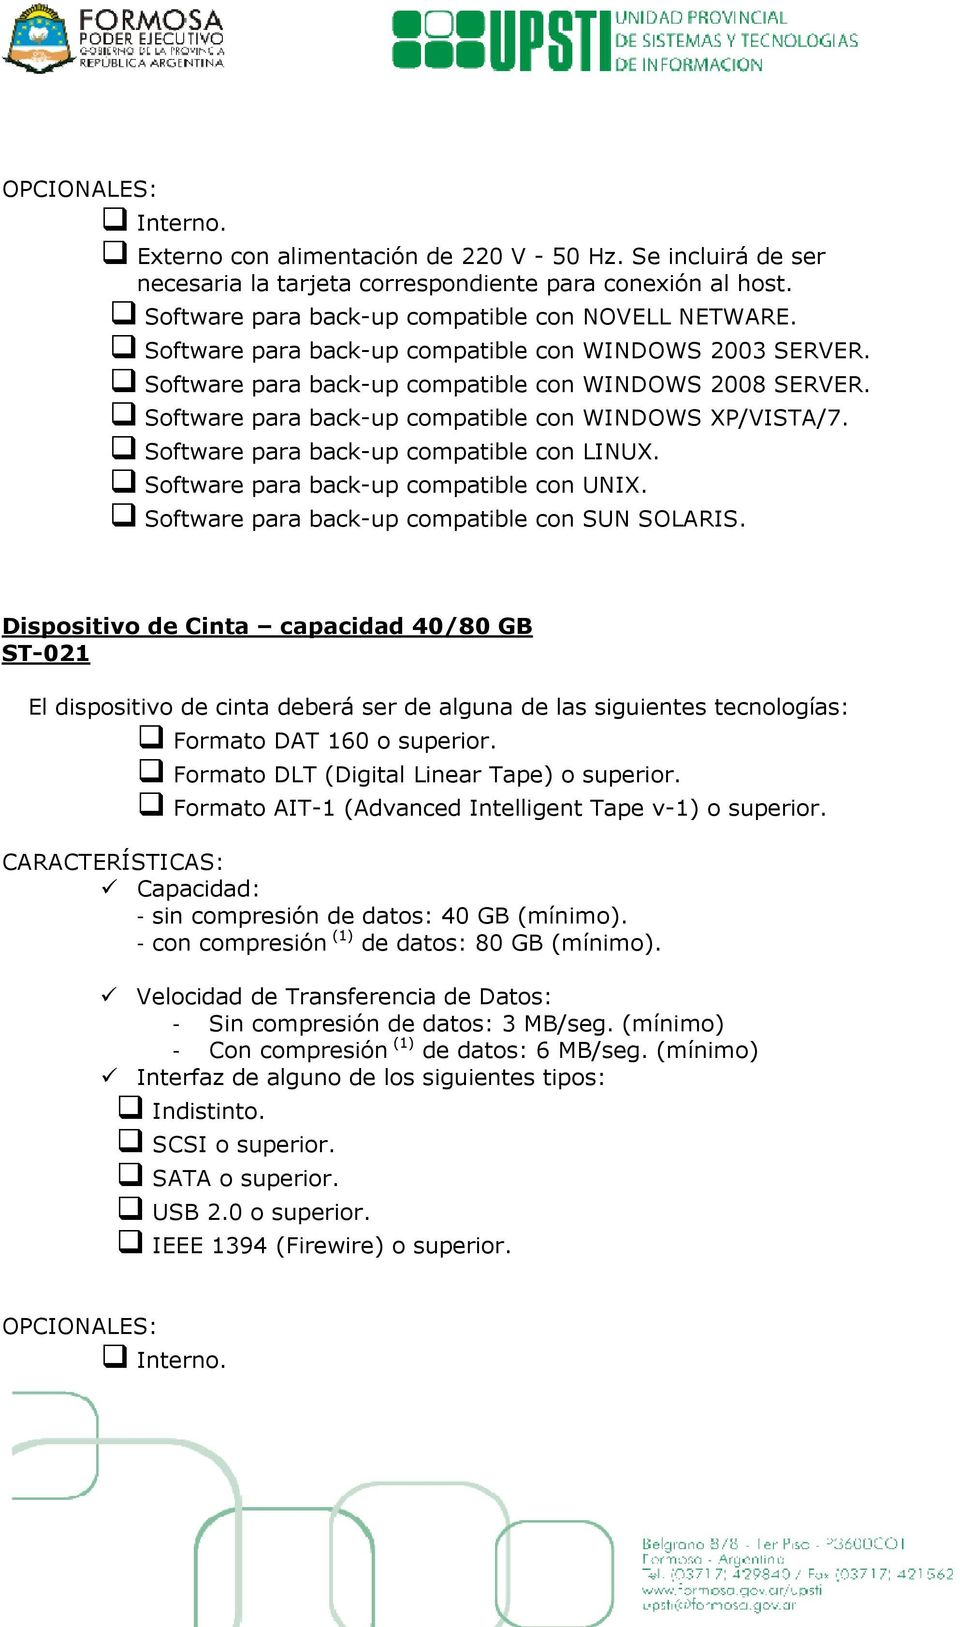 Software para back-up compatible con LINUX. Software para back-up compatible con UNIX. Software para back-up compatible con SUN SOLARIS.